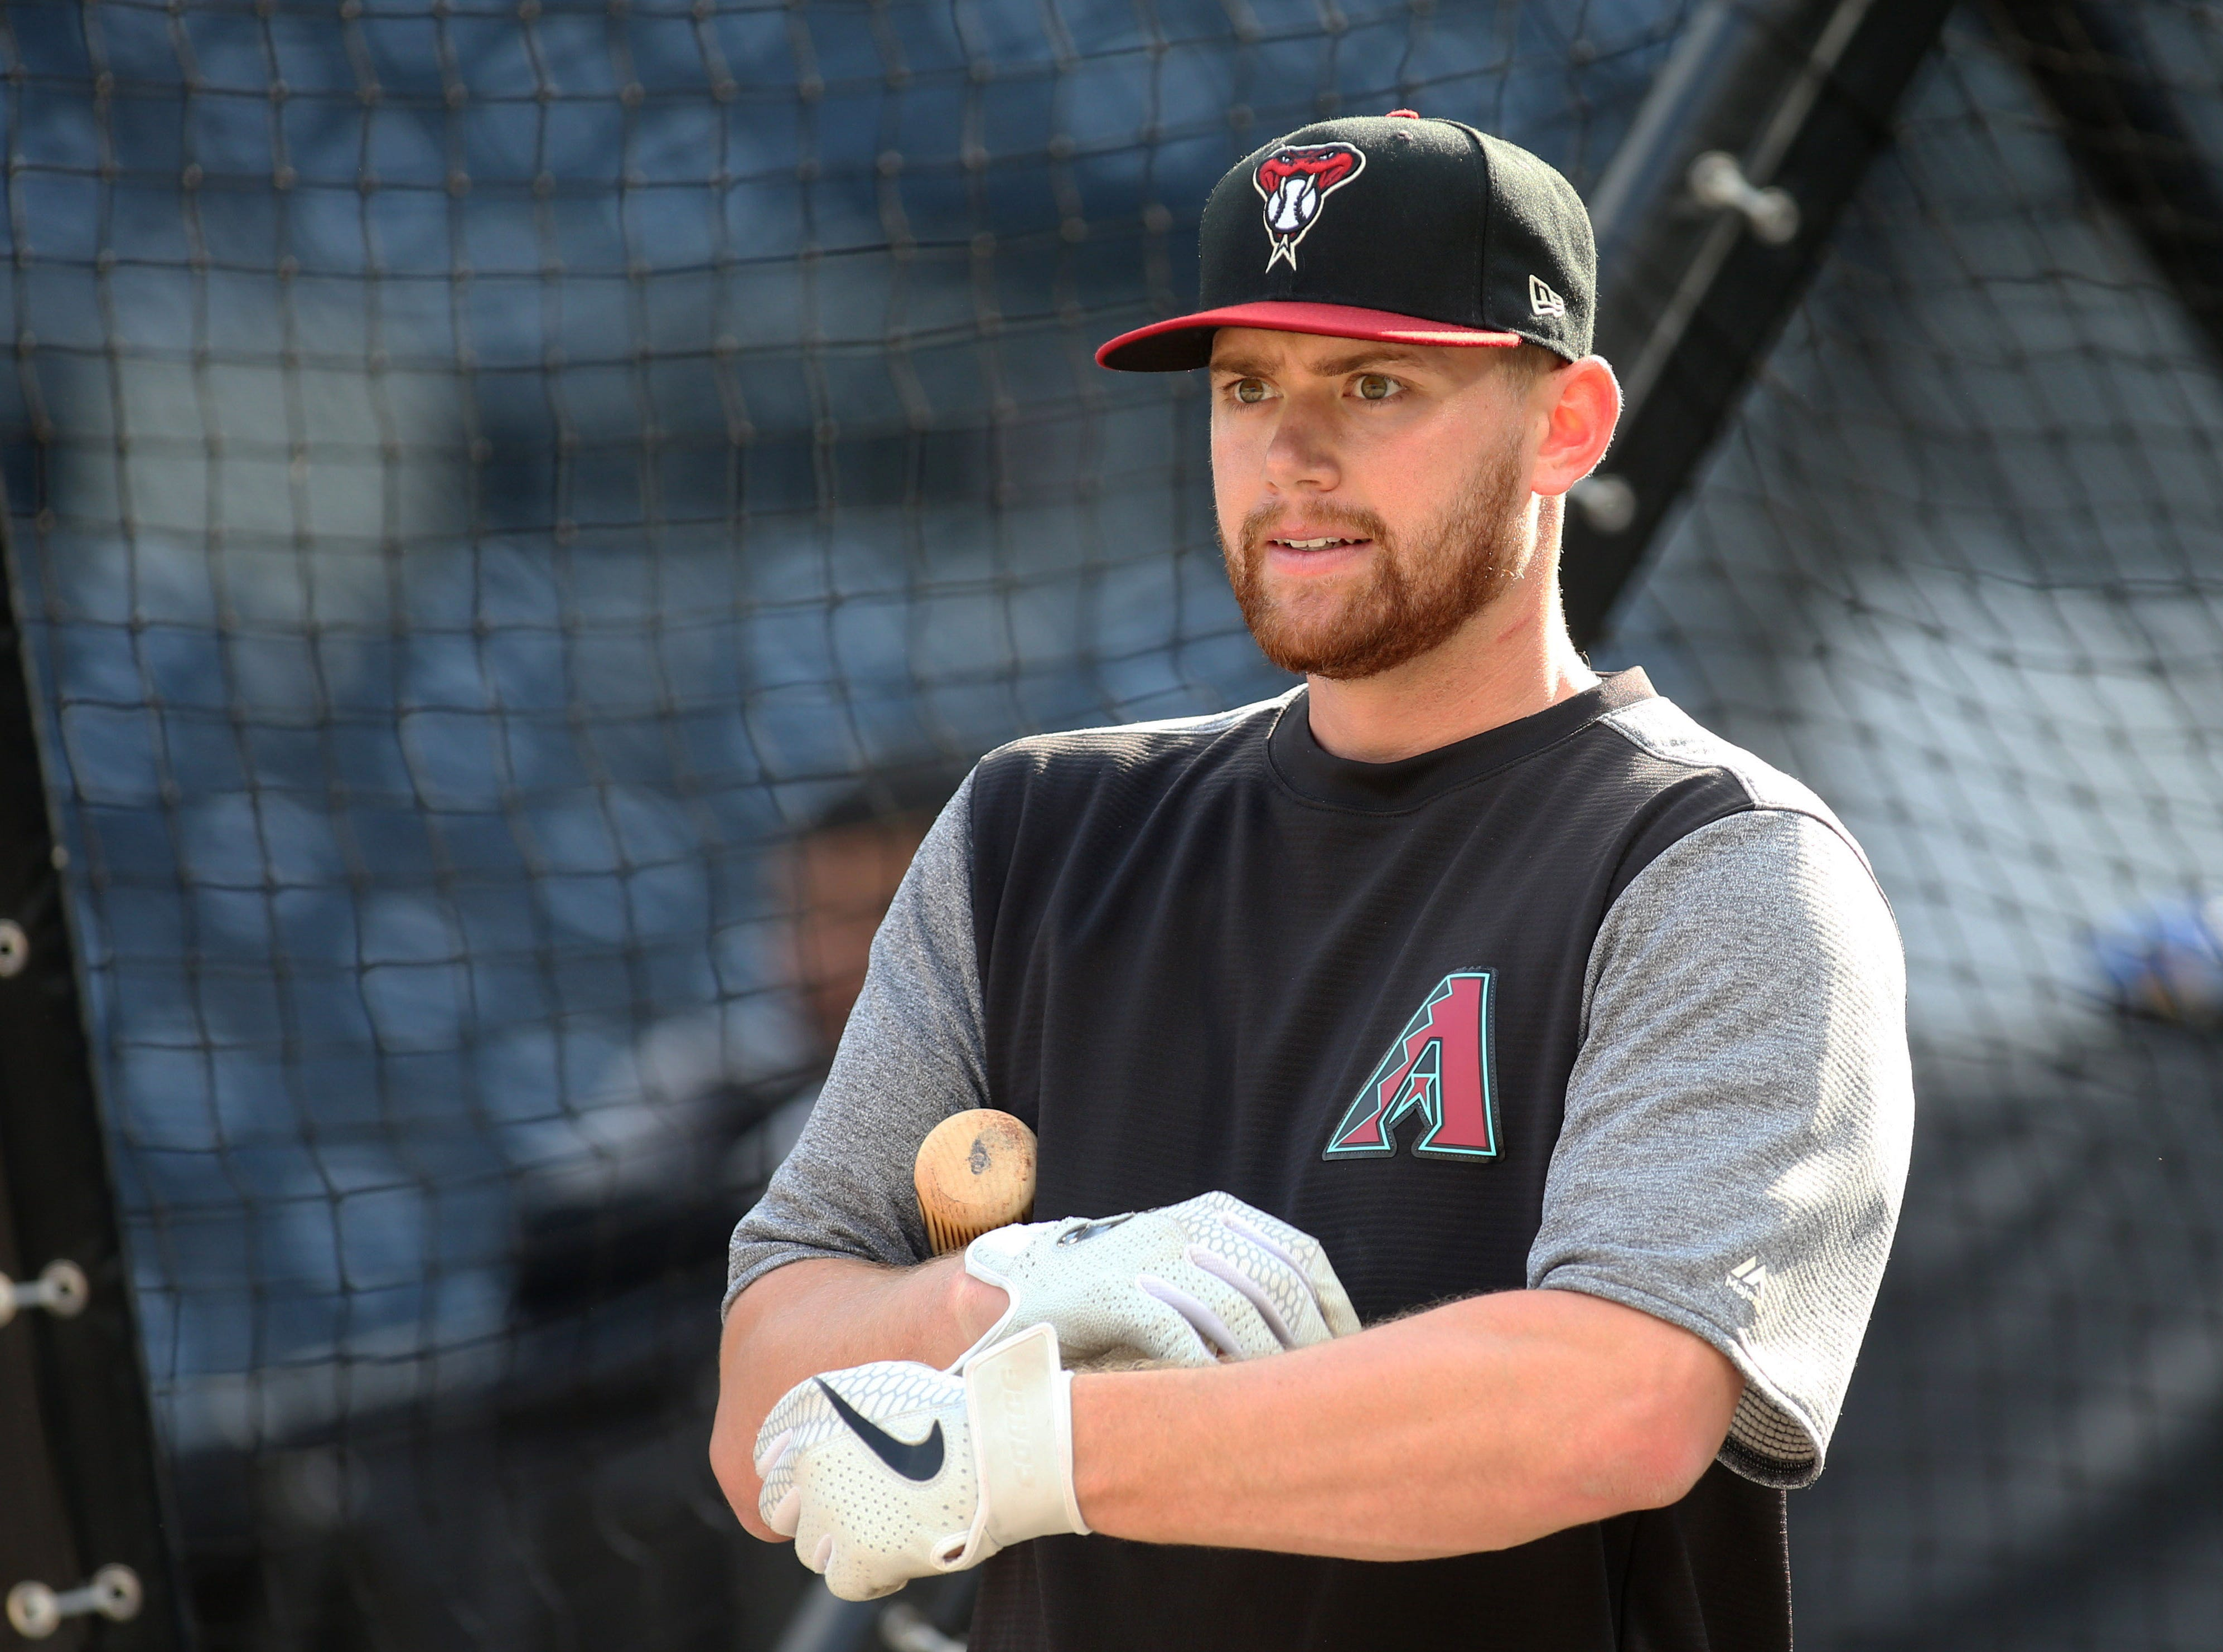 Apr 23, 2019; Pittsburgh, PA, USA;  Arizona Diamondbacks catcher Carson Kelly (18) looks on at the batting cage before playing the Pittsburgh Pirates at PNC Park. Mandatory Credit: Charles LeClaire-USA TODAY Sports